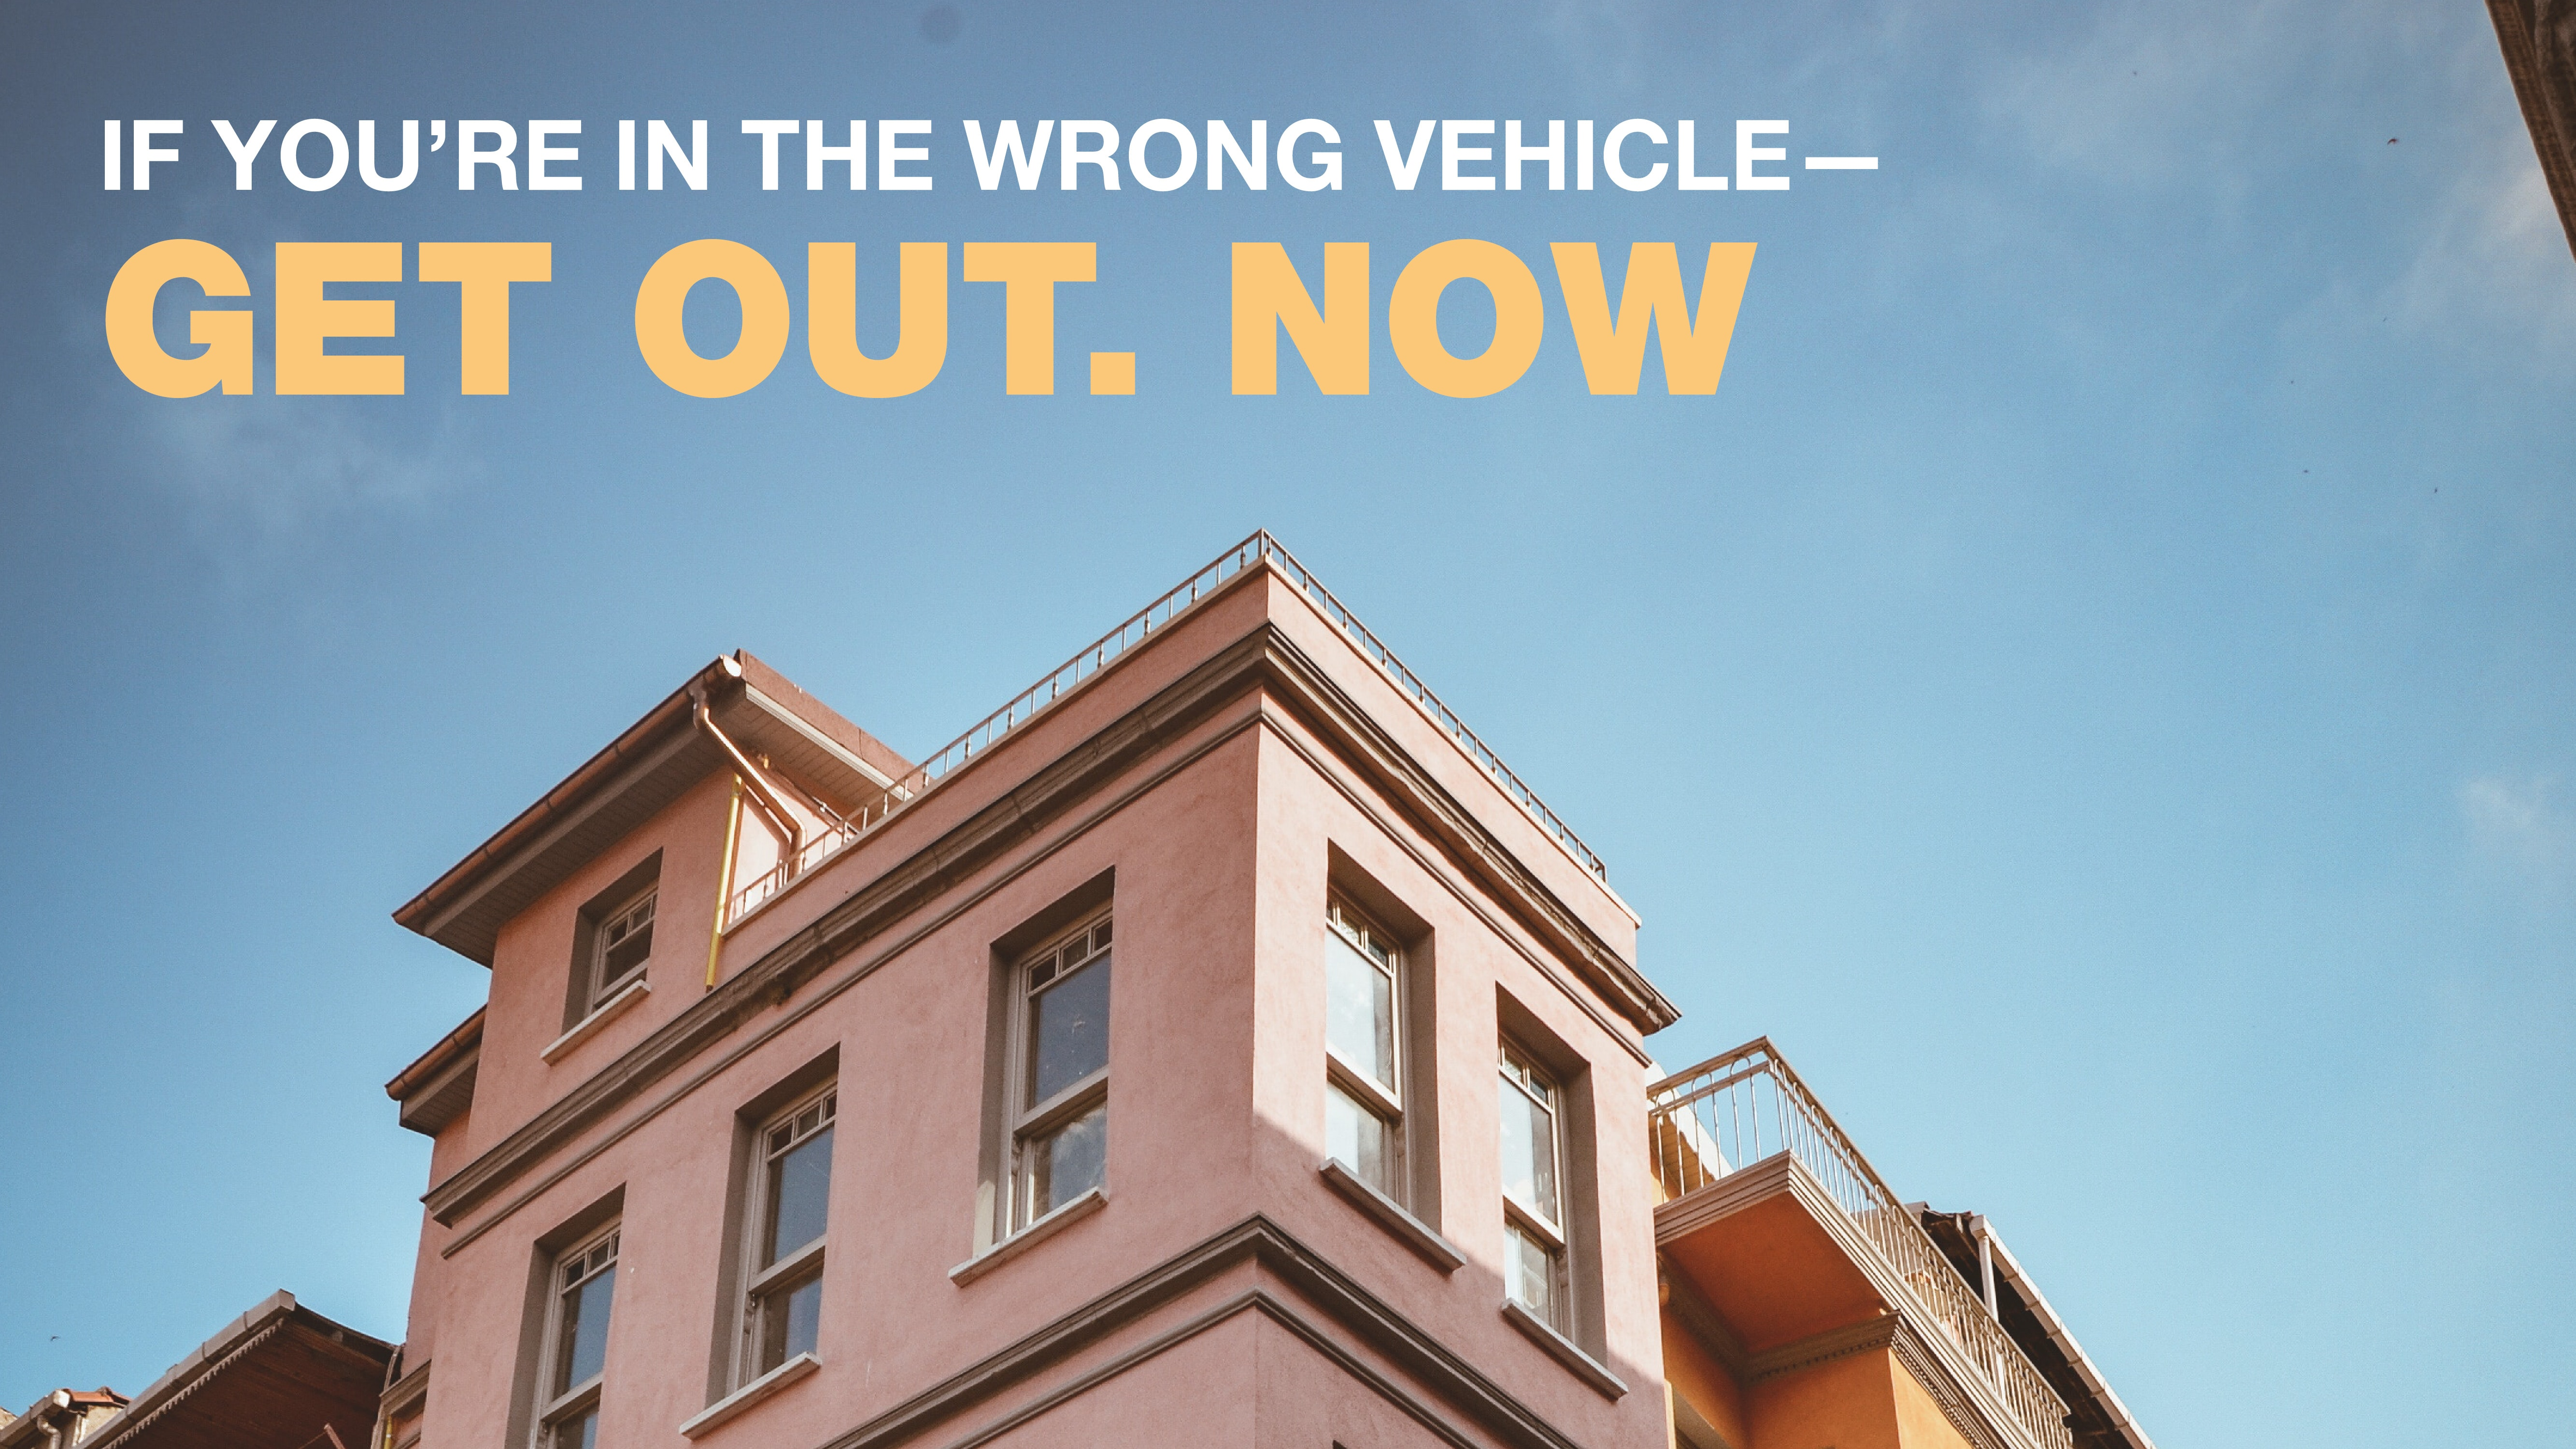 If you're in the wrong vehicle—get out. NOW